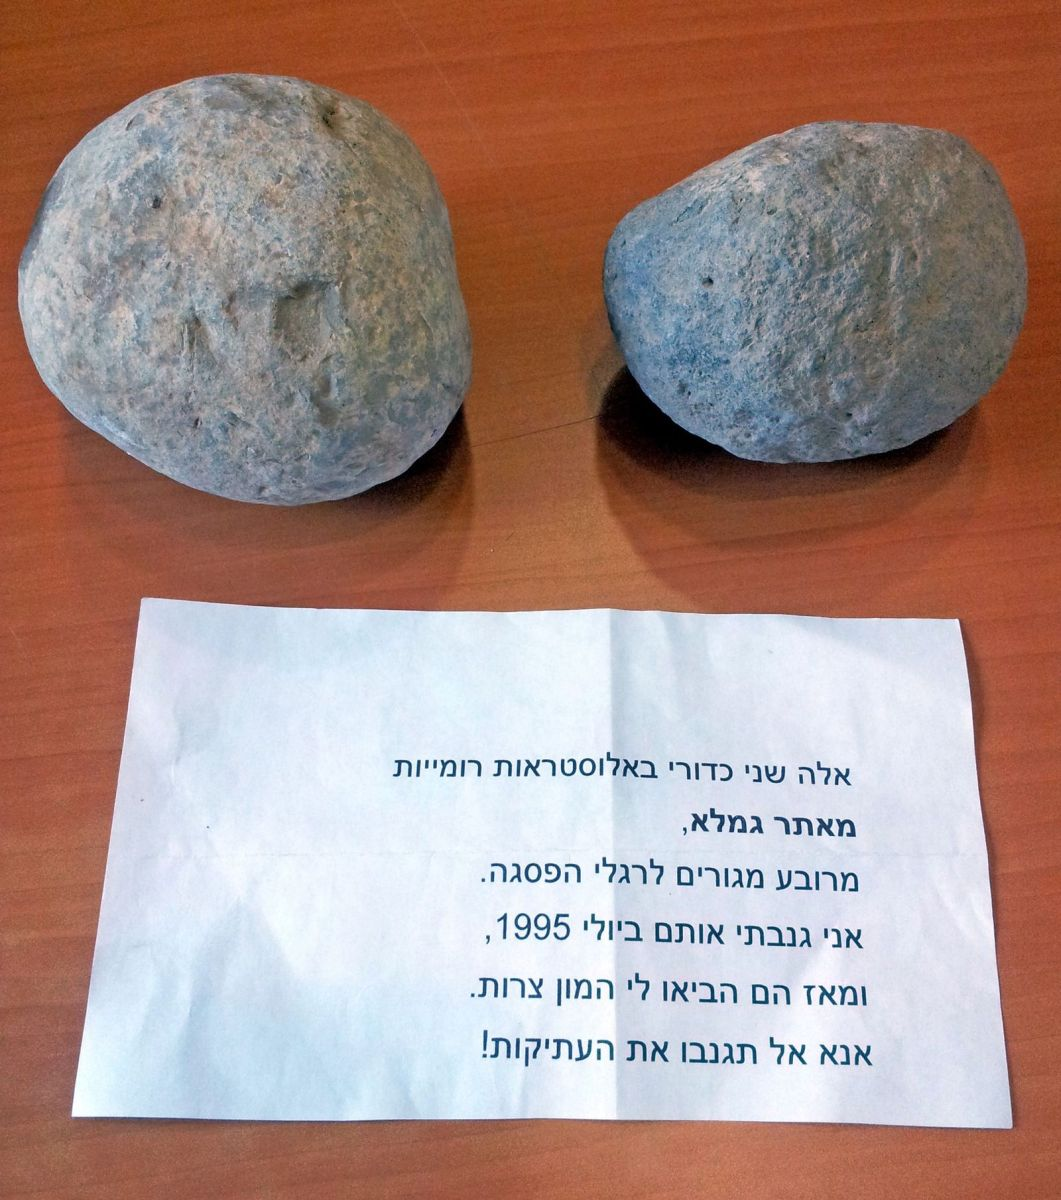 The stolen ballista balls and the accompanying note left at the Museum of Islamic and Near Eastern Cultures. Photo by Dalia Manor